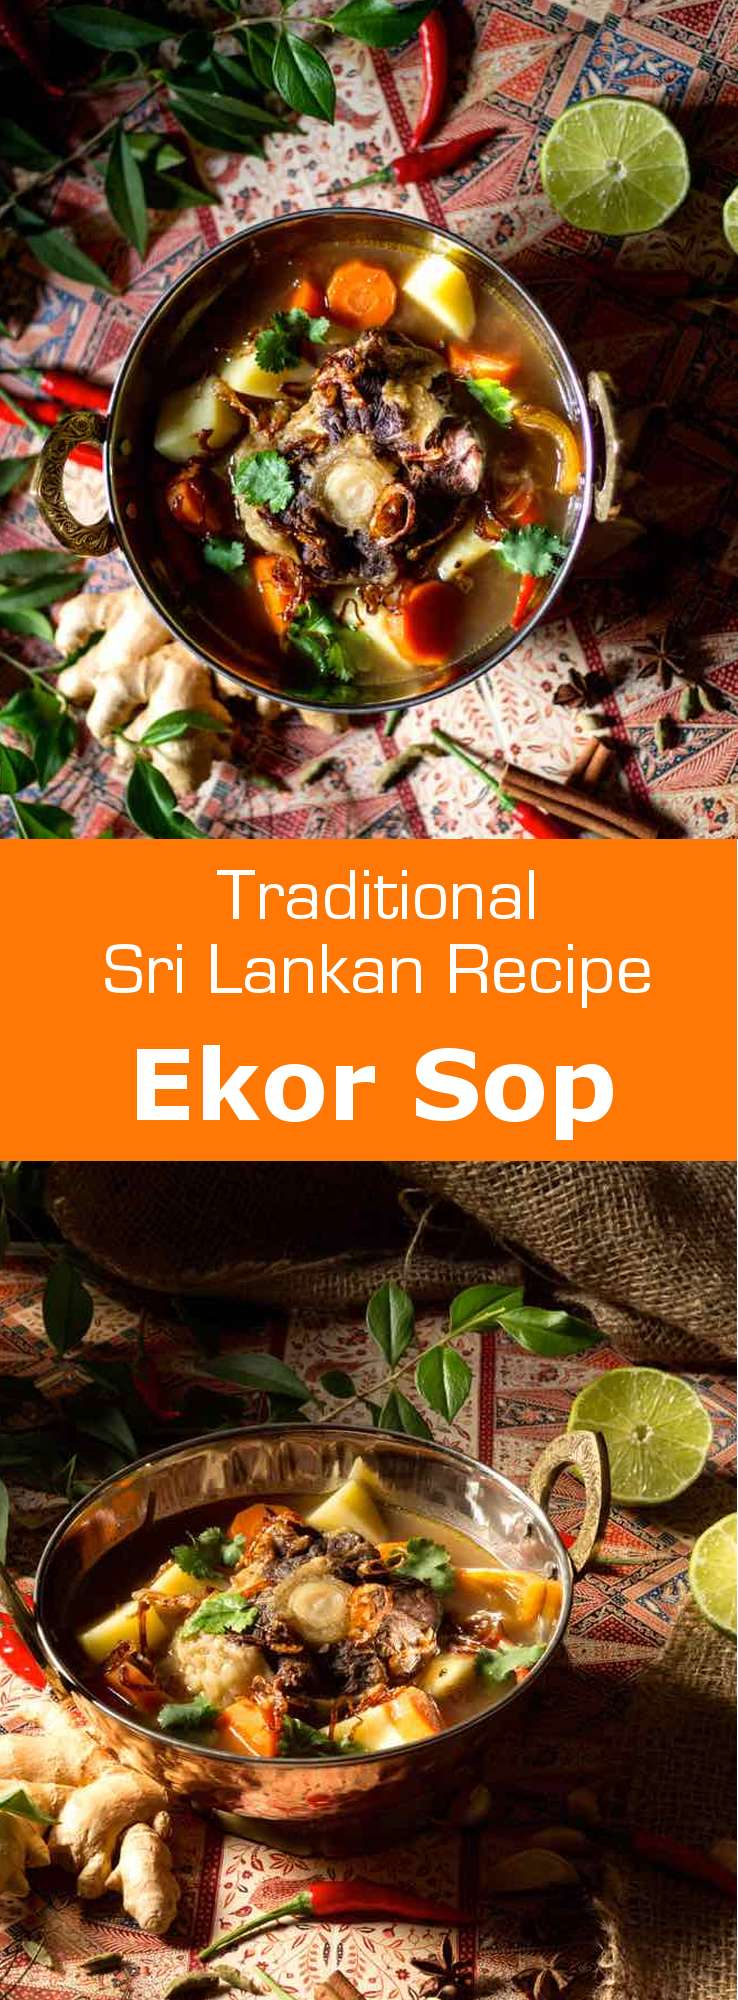 Ekor sop is a delicious Sri Lankan oxtail soup, rich in spices, that originated from the Malay community. #SriLanka #SriLankanCuisine #SriLankanSoup #Soup #SoupRecipe #SriLankanRecipe #WorldCuisine #196flavors